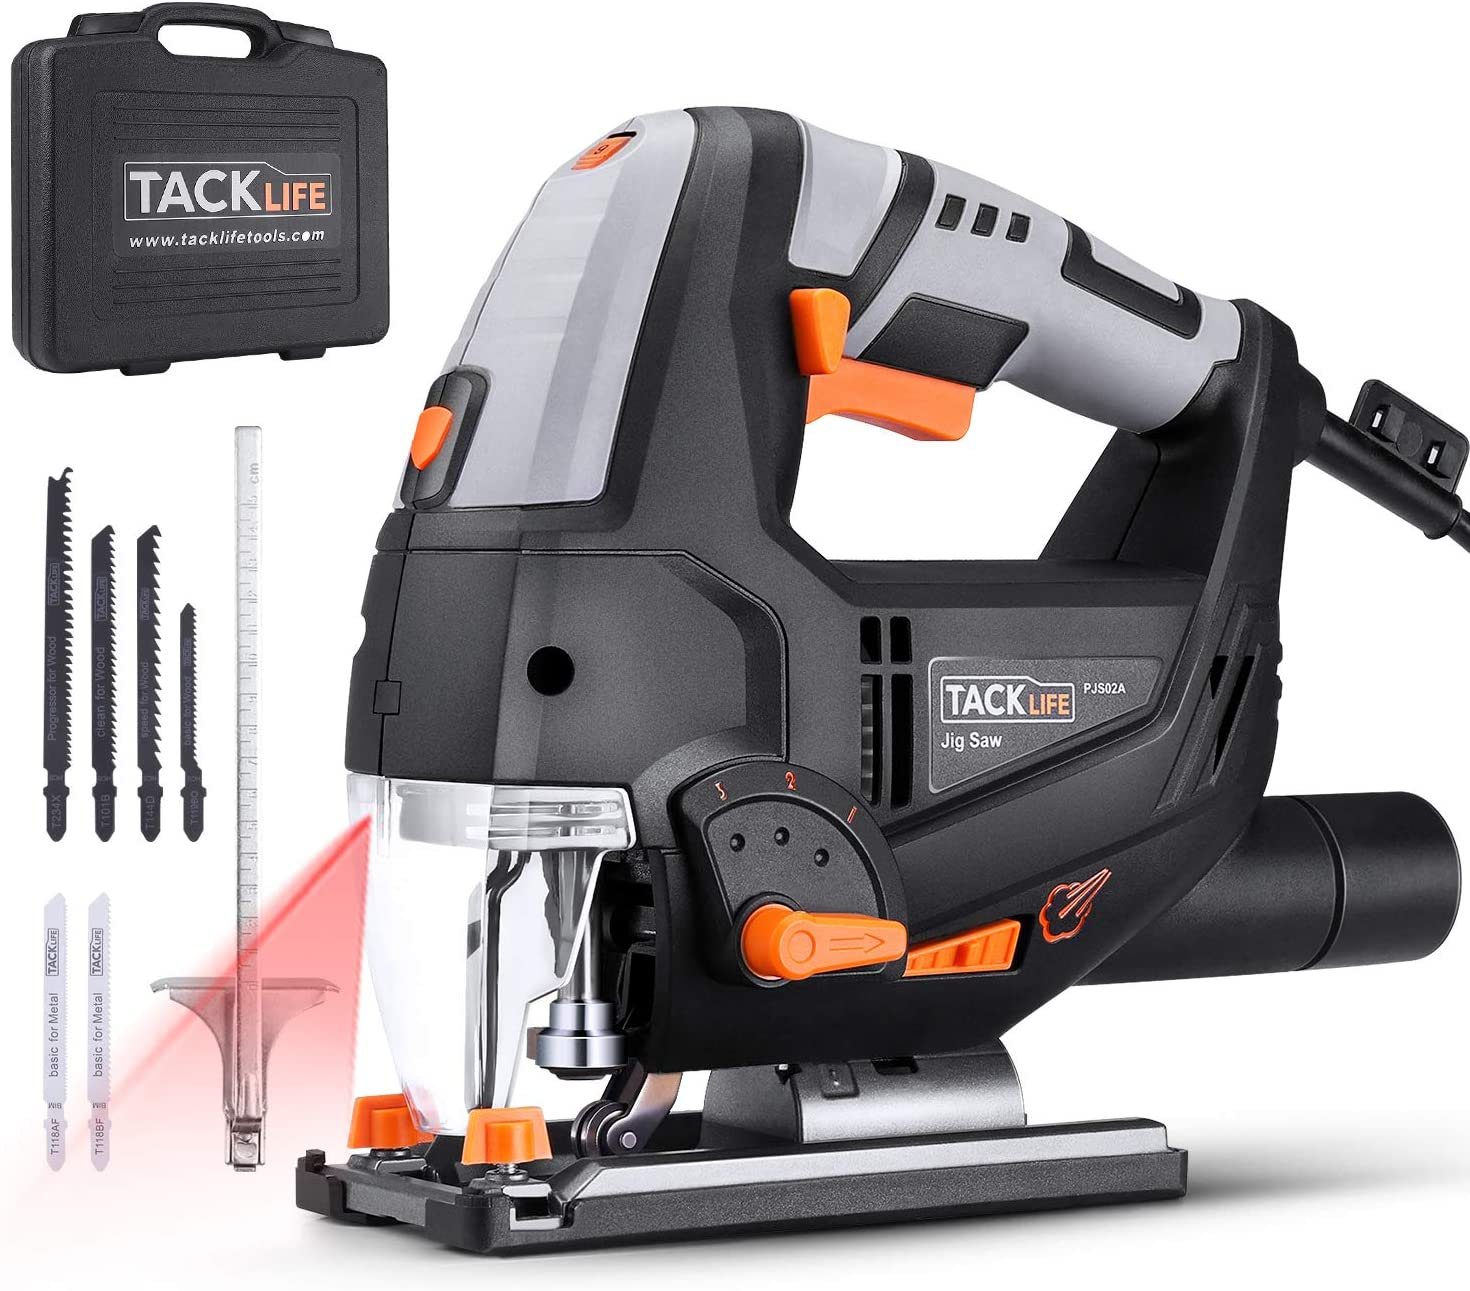 Tacklife Advanced Jigsaw